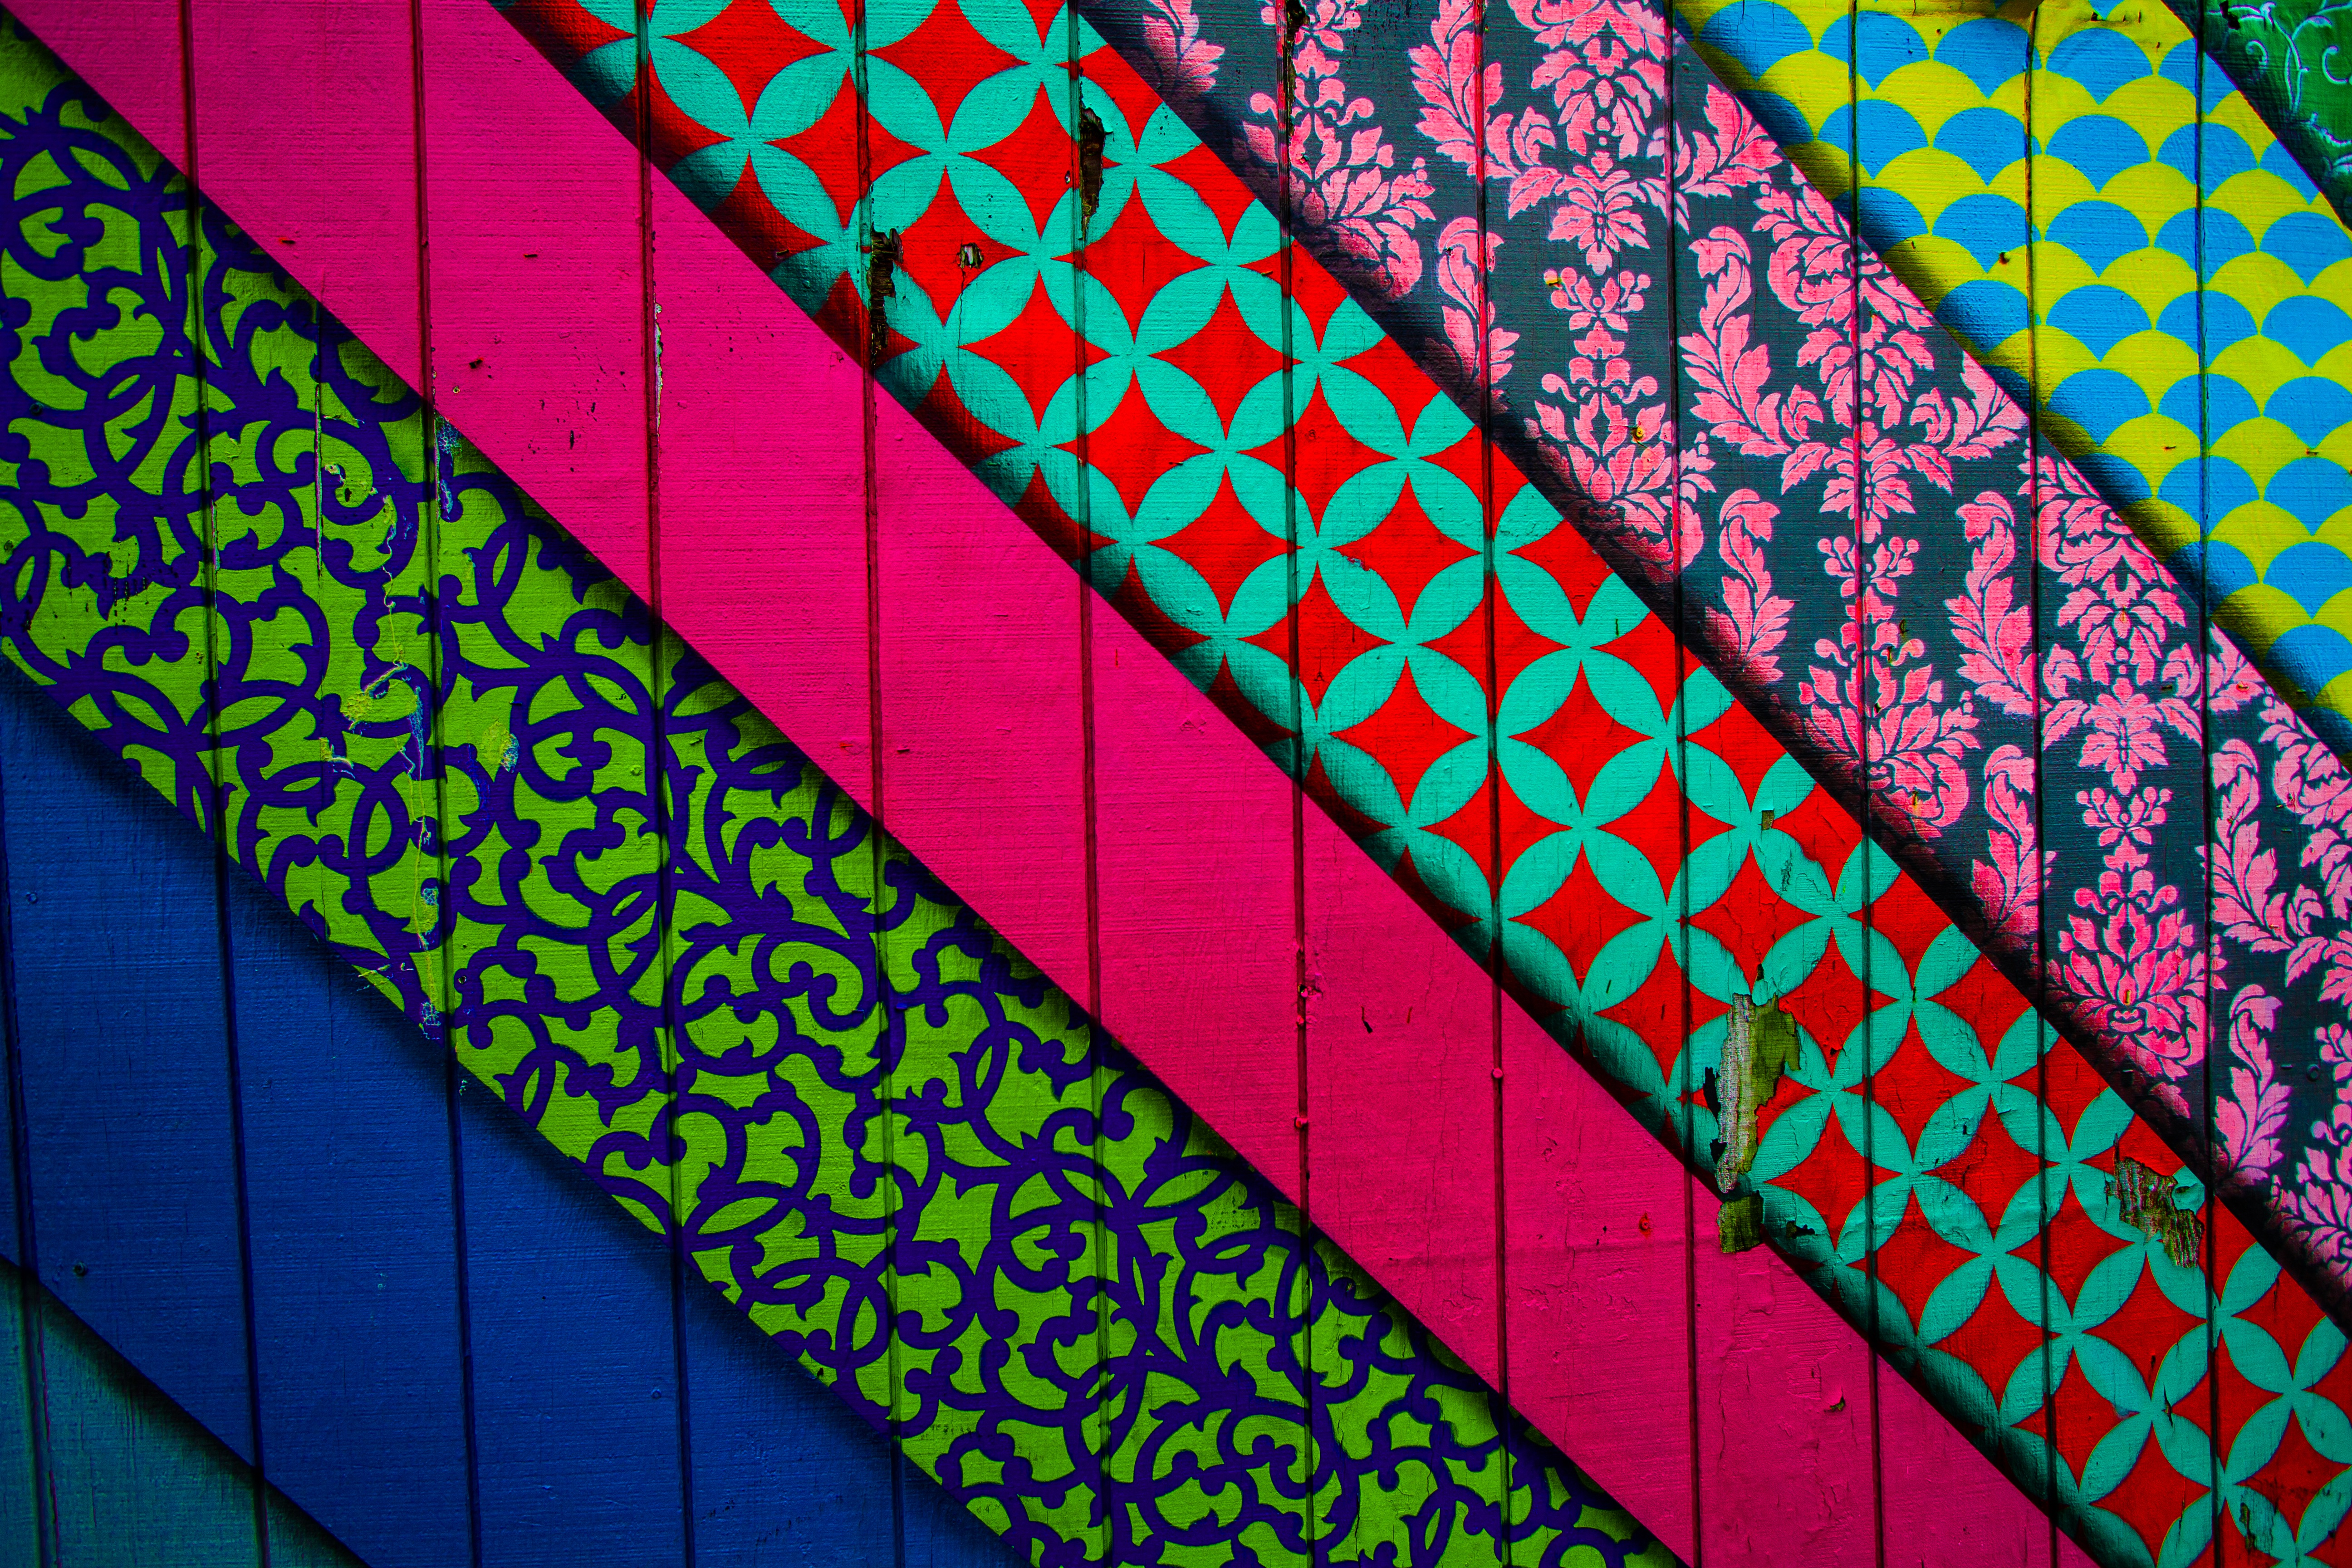 131498 download wallpaper Wall, Patterns, Multicolored, Motley, Texture, Lines, Textures, Colorful, Colourful screensavers and pictures for free